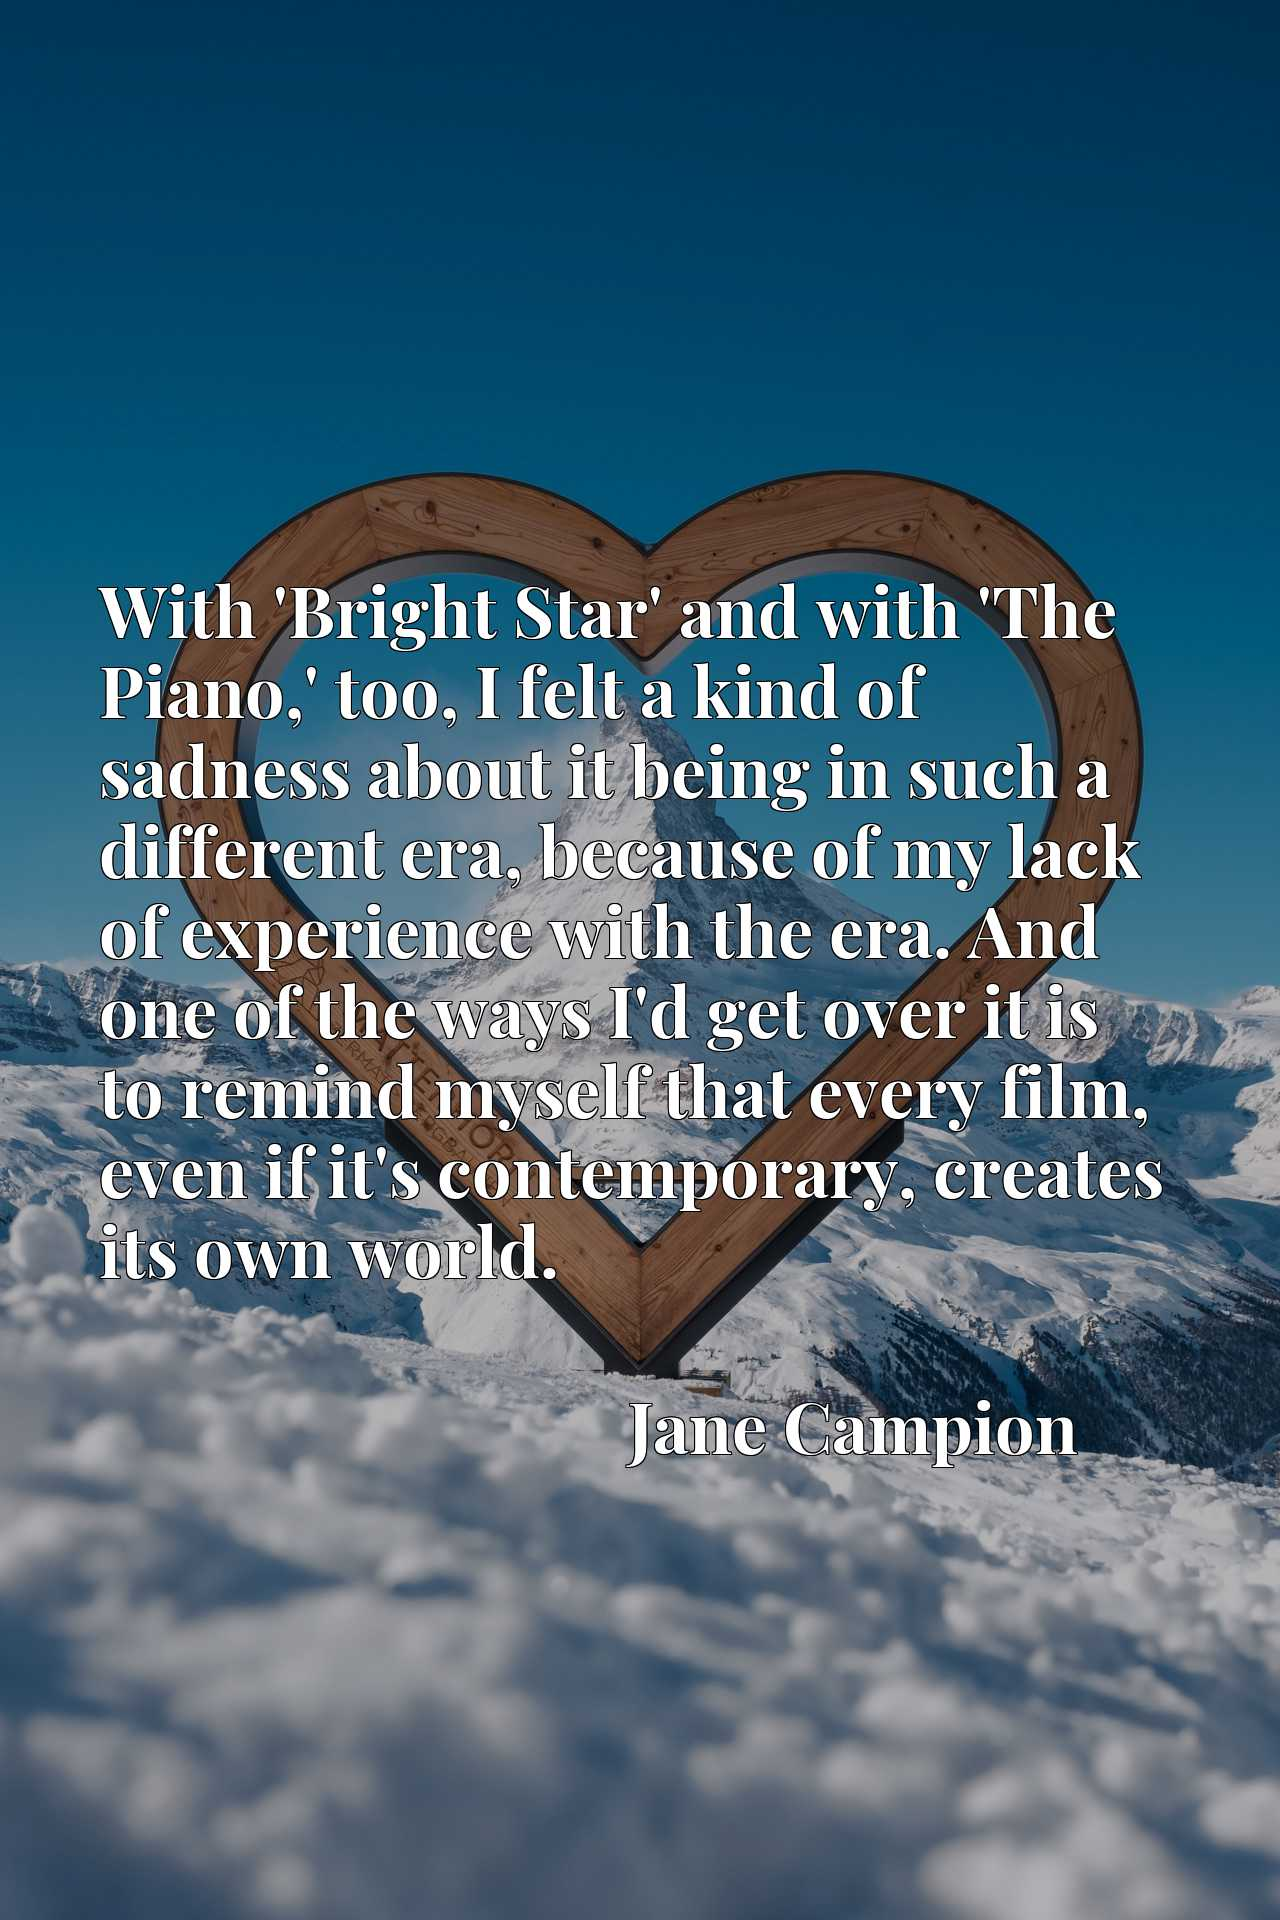 With 'Bright Star' and with 'The Piano,' too, I felt a kind of sadness about it being in such a different era, because of my lack of experience with the era. And one of the ways I'd get over it is to remind myself that every film, even if it's contemporary, creates its own world.